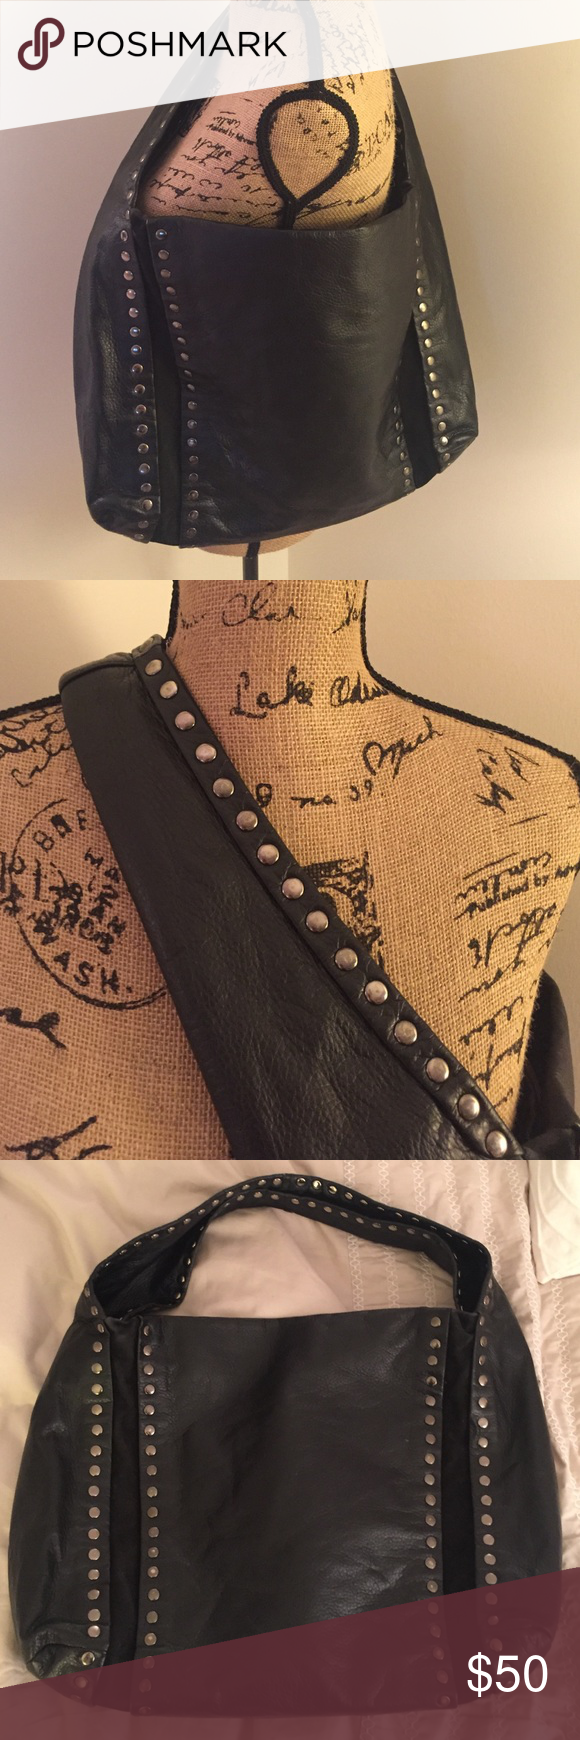 Big Buddha hobo bag Beautiful black leather Big Buddha handbag! Simple silver studs along the shoulder strap and down the front/back. Very soft leather, light pink interior with two inner zipper pockets and two small interior pockets. Some light stains on interior but in otherwise great condition! Bags Hobos